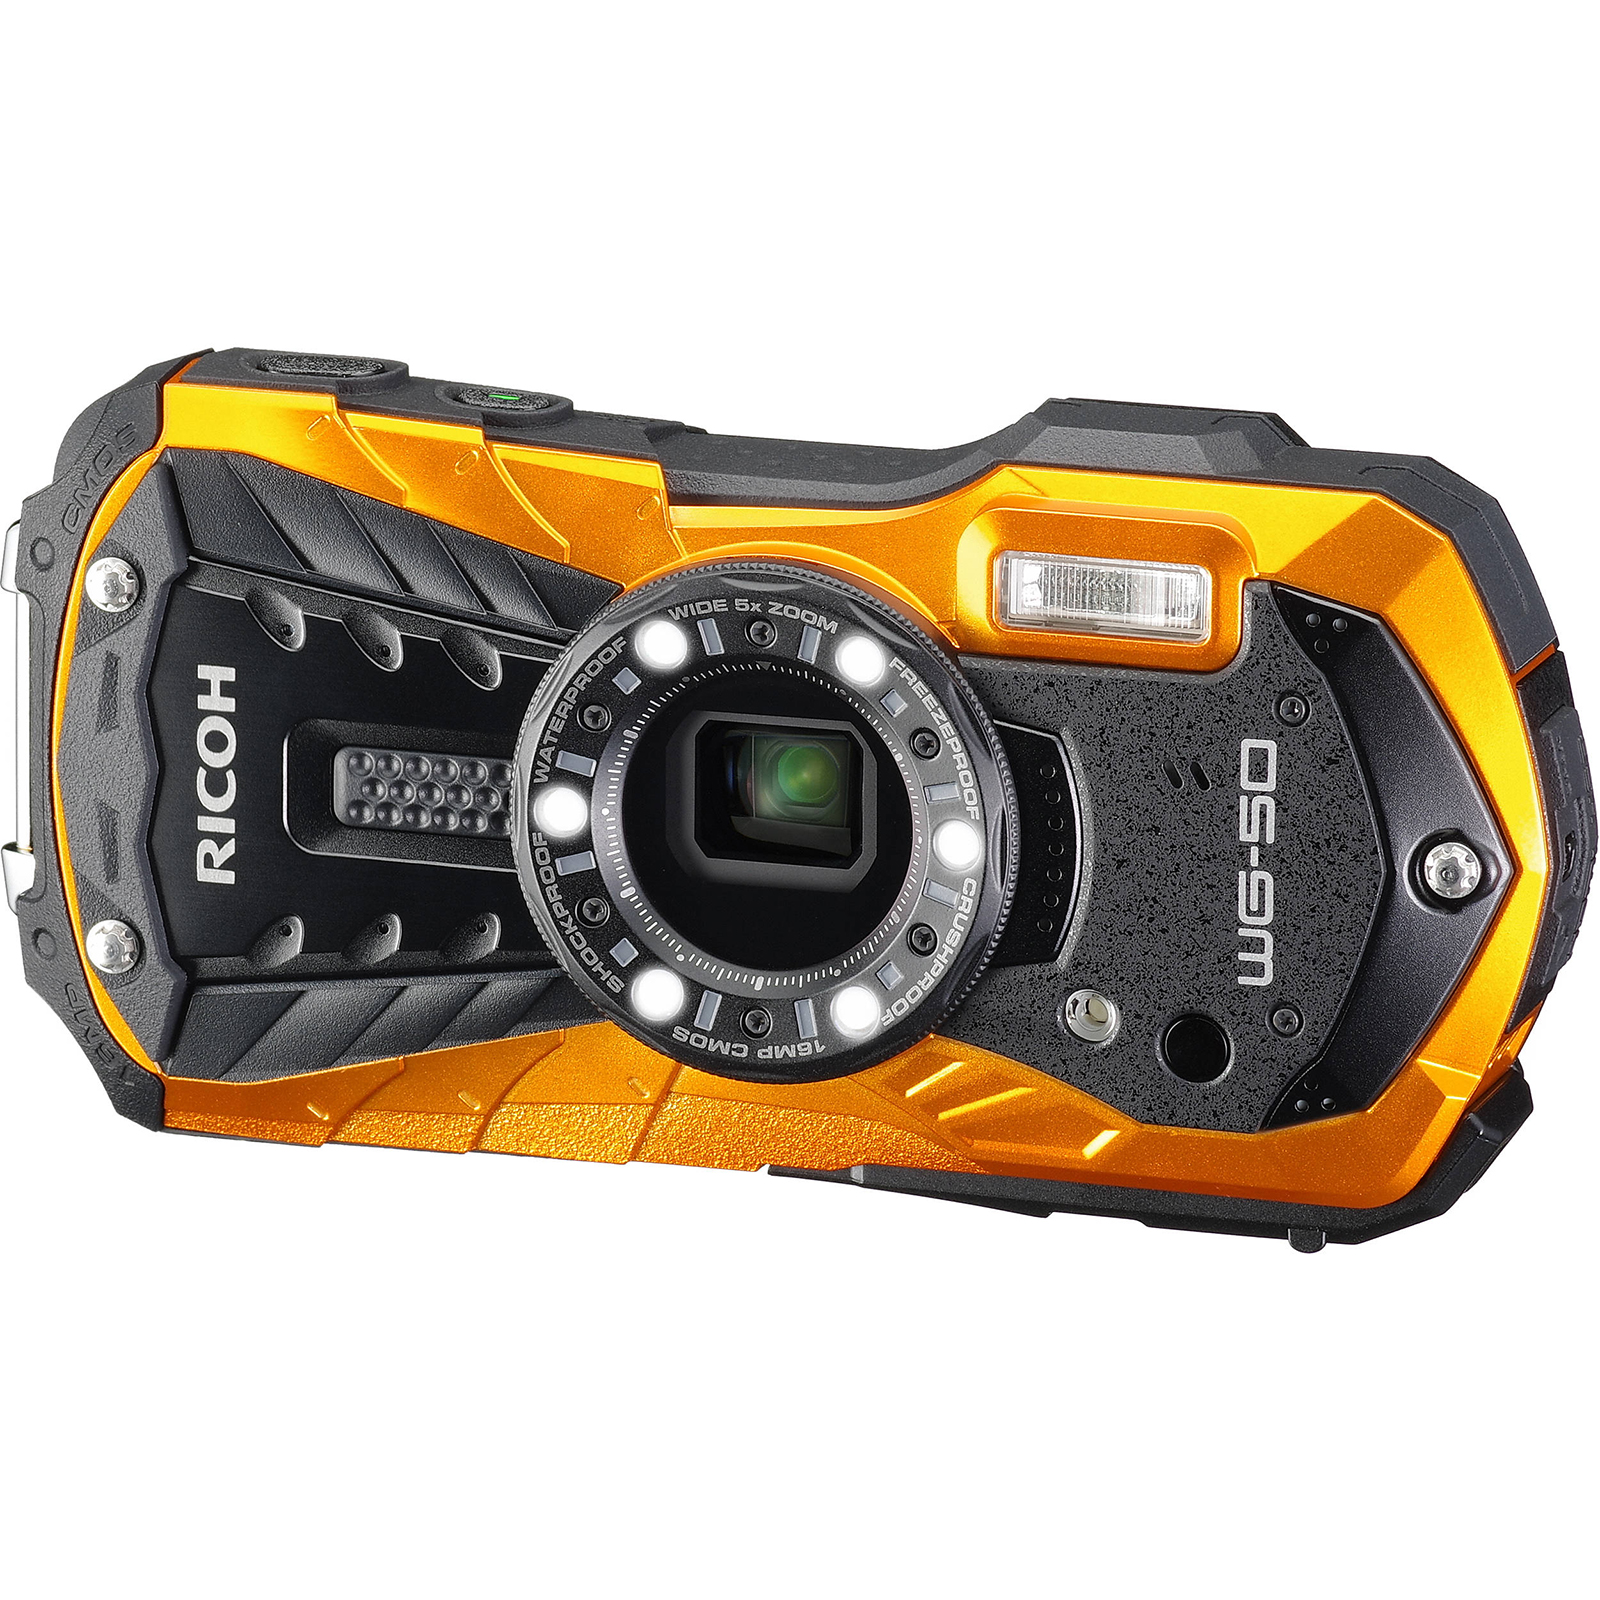 Ricoh WG-50 Waterproof / Shockproof Digital Camera (Orange)